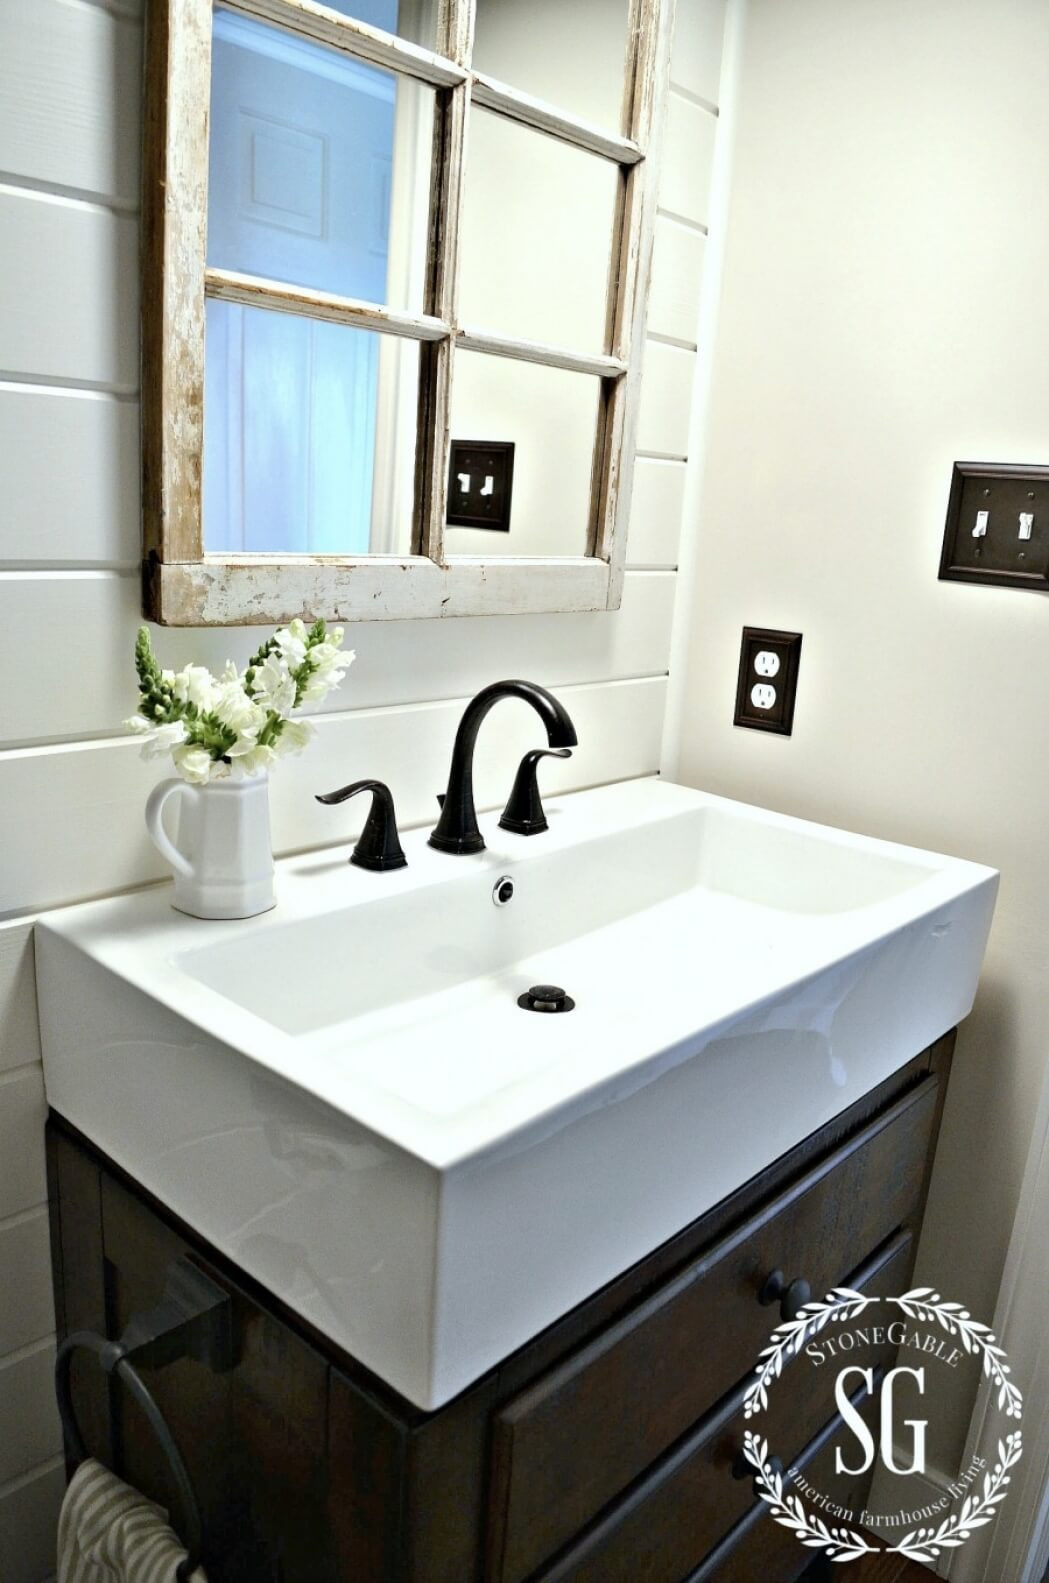 24 bathroom sink ideas homebnc